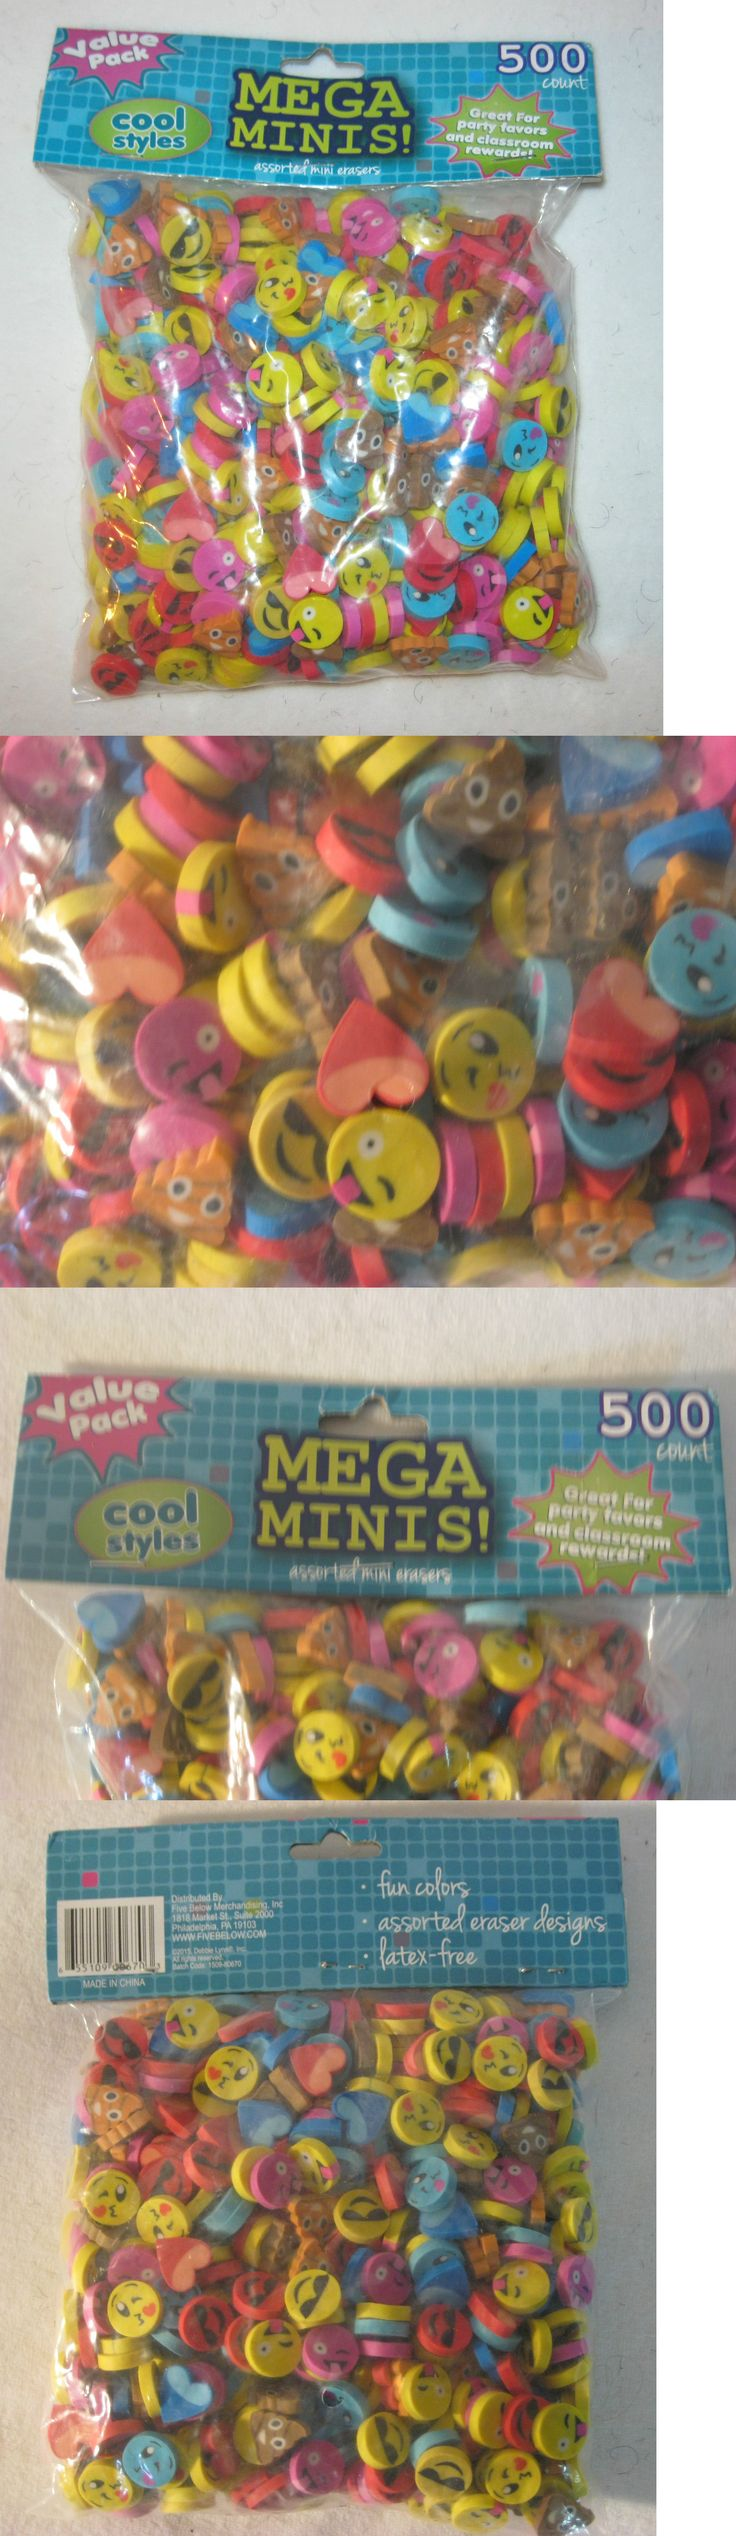 Other School Supplies 3142: Computer Emoji Emoticon Eraser Lot 500 Piece Lot New Discontinued -> BUY IT NOW ONLY: $30.44 on eBay!